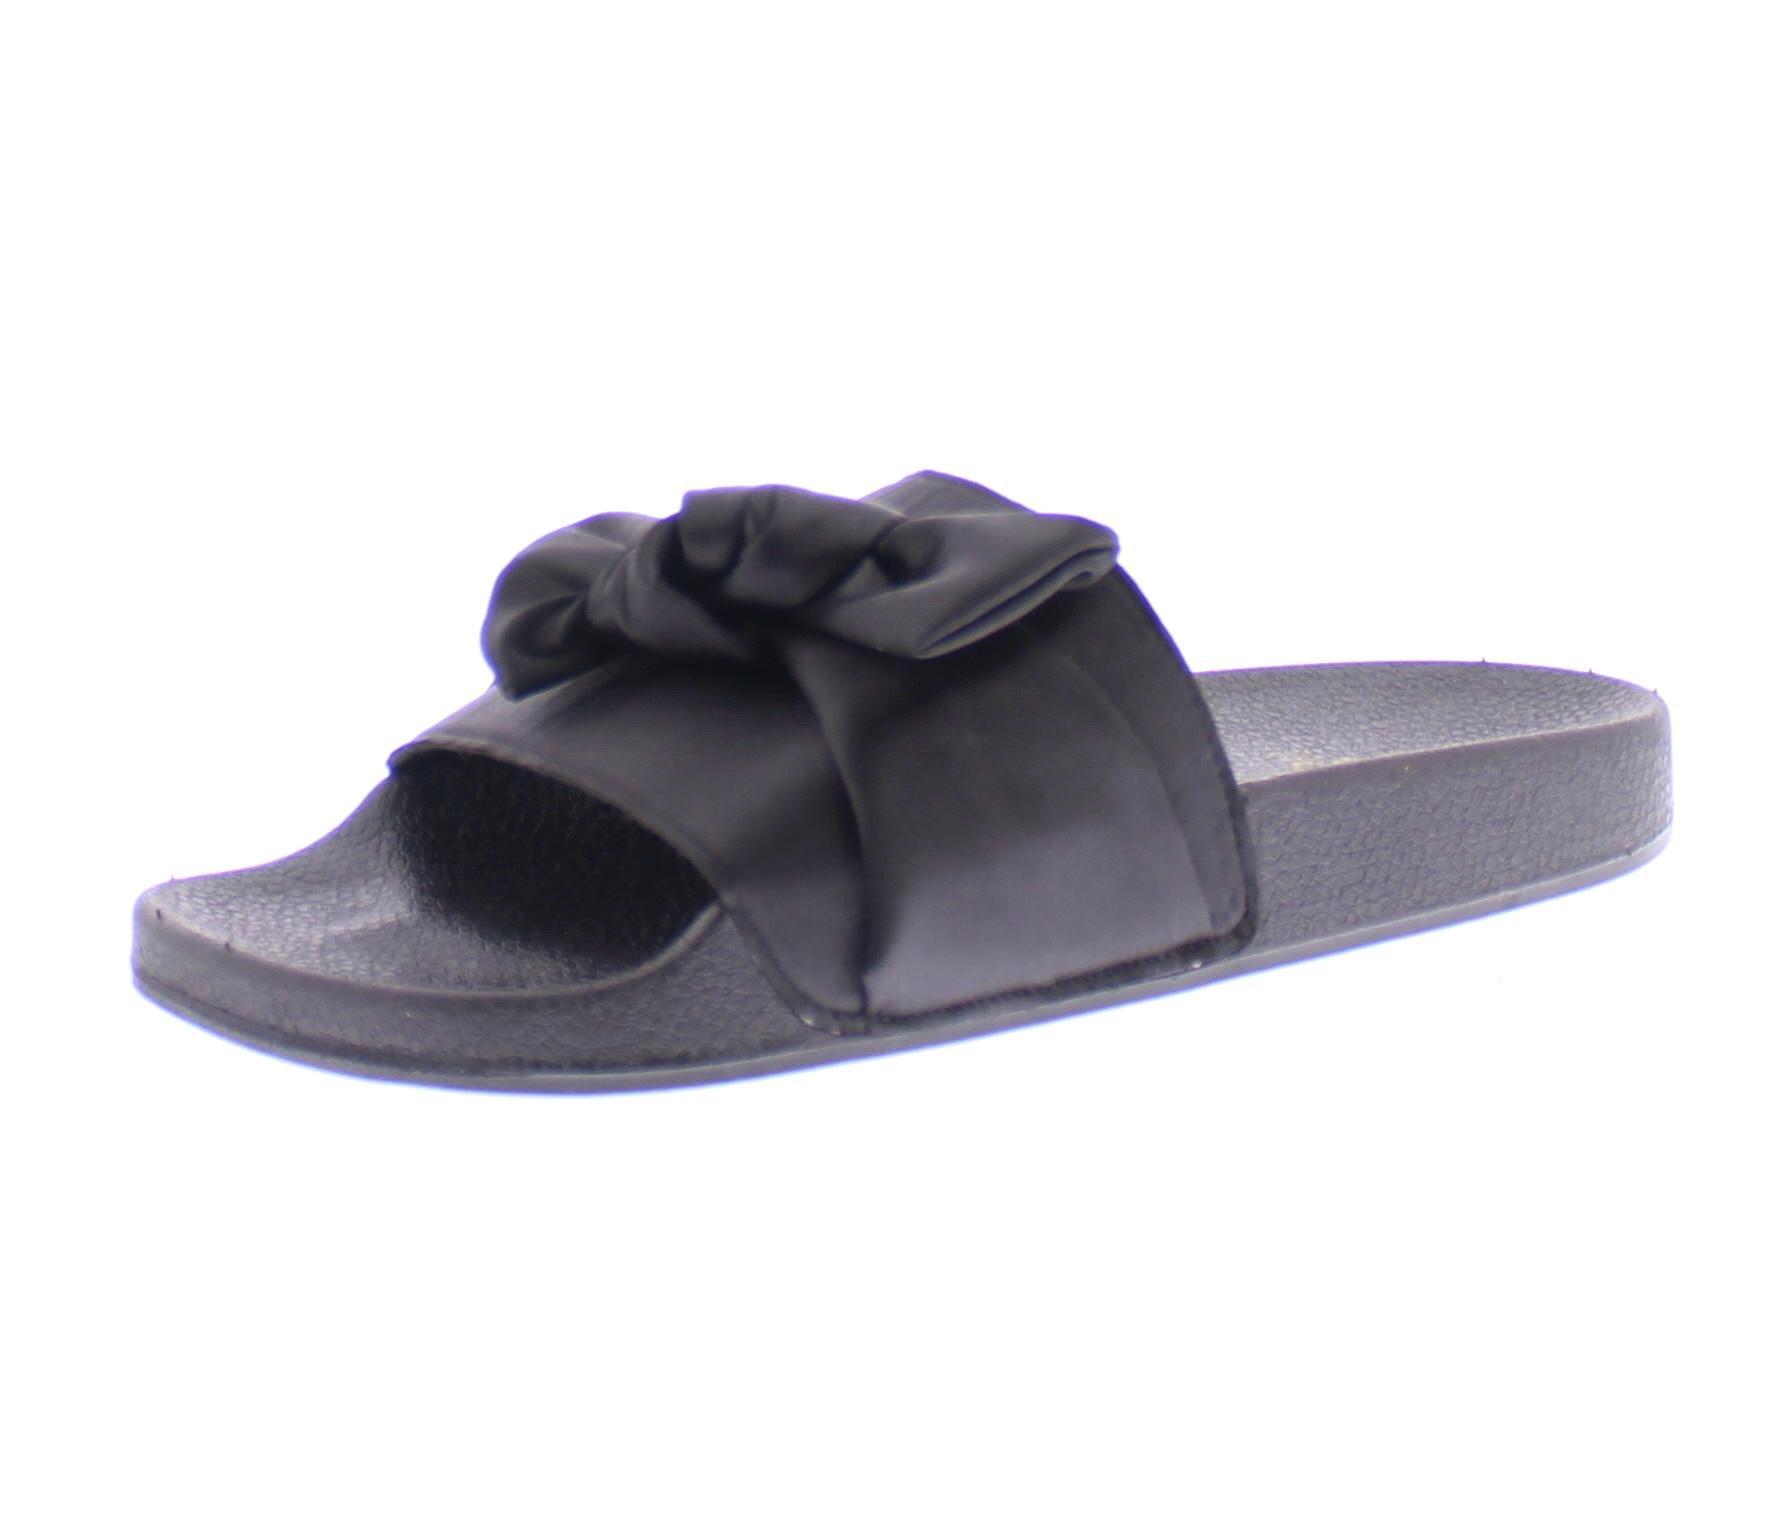 Gold Toe Women's Satina Black Satin Bow Top Knot Open Toe Flat Pool Slides Sandals, Casual Slip On Shoes 7